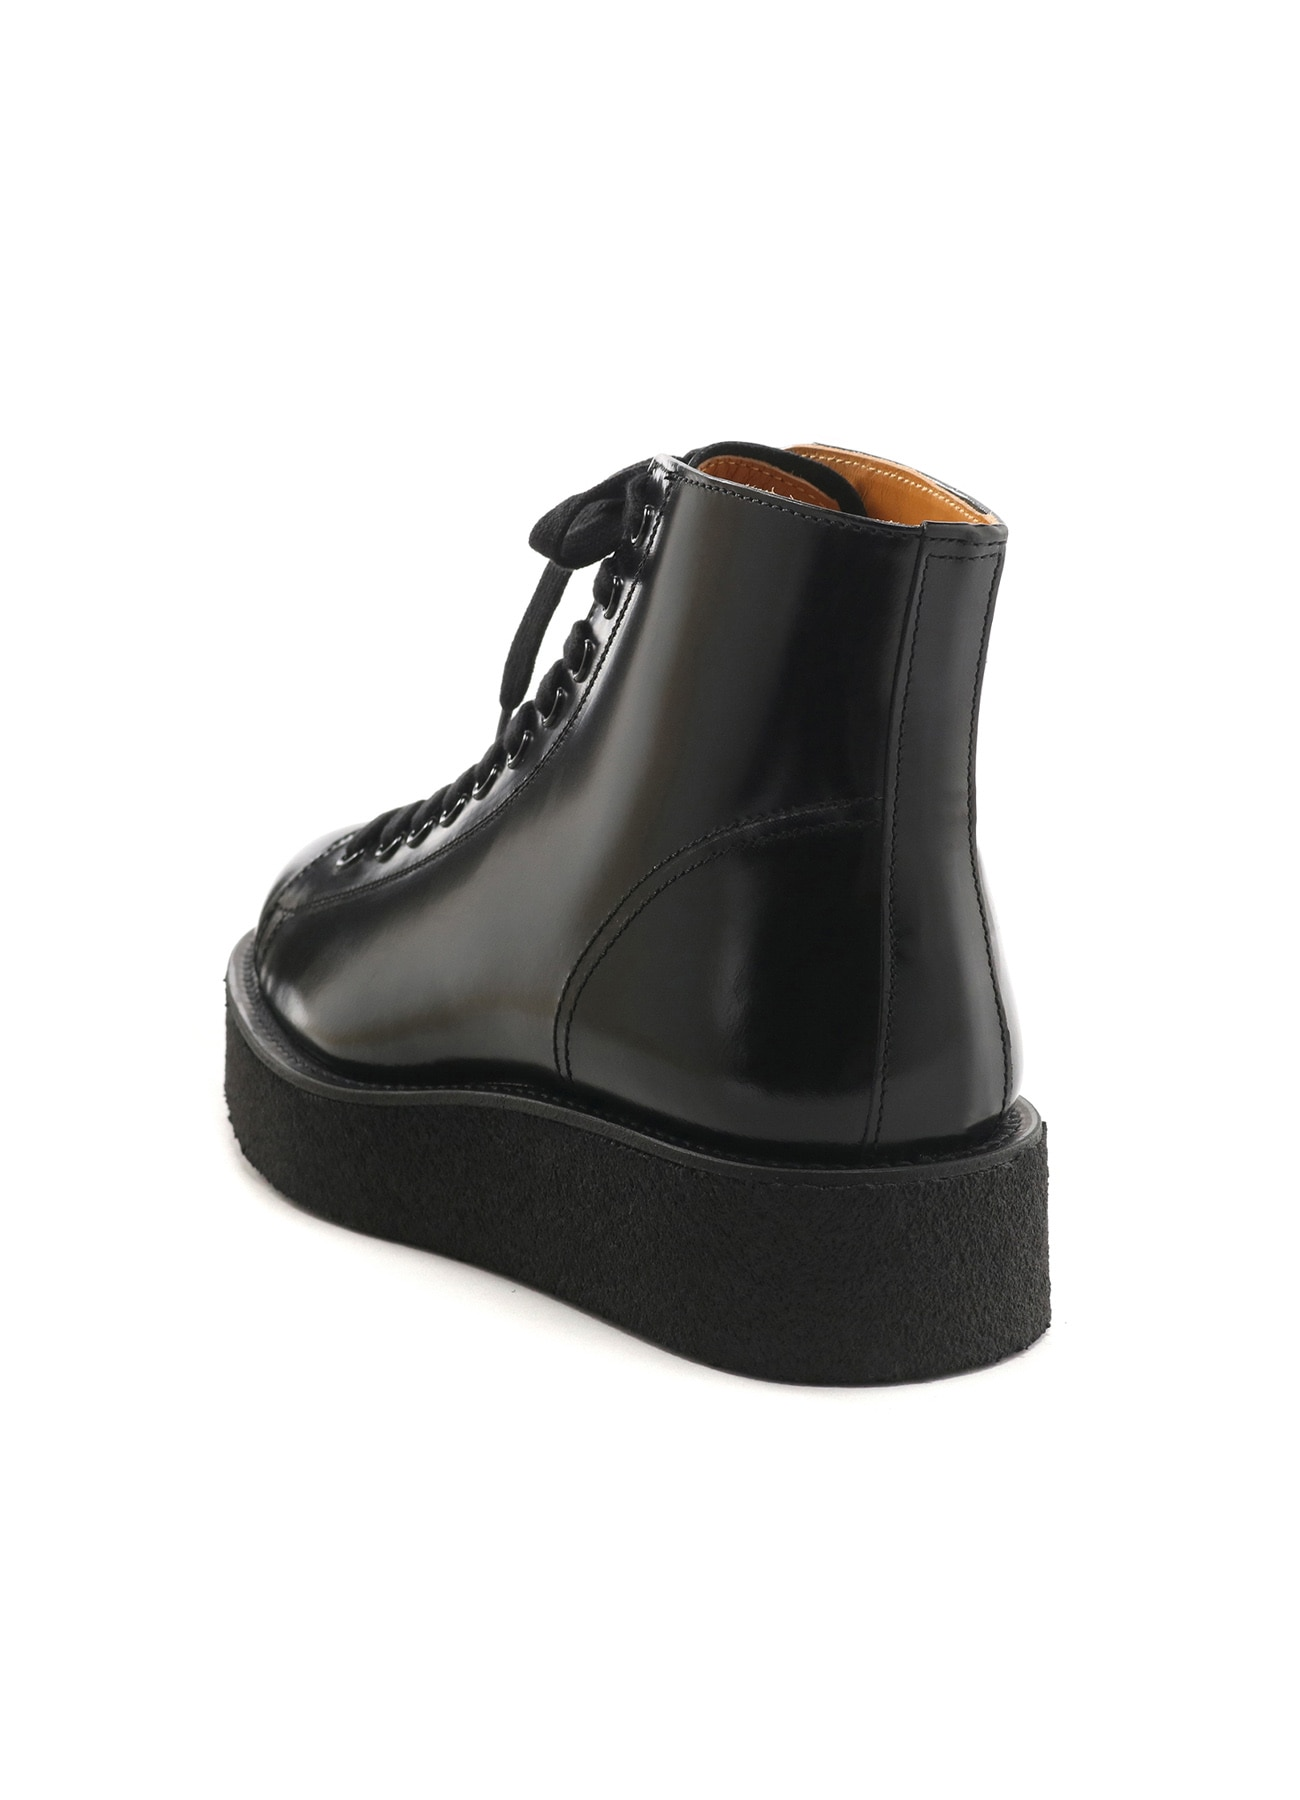 GLASS LEATHER DEMI BOOTS